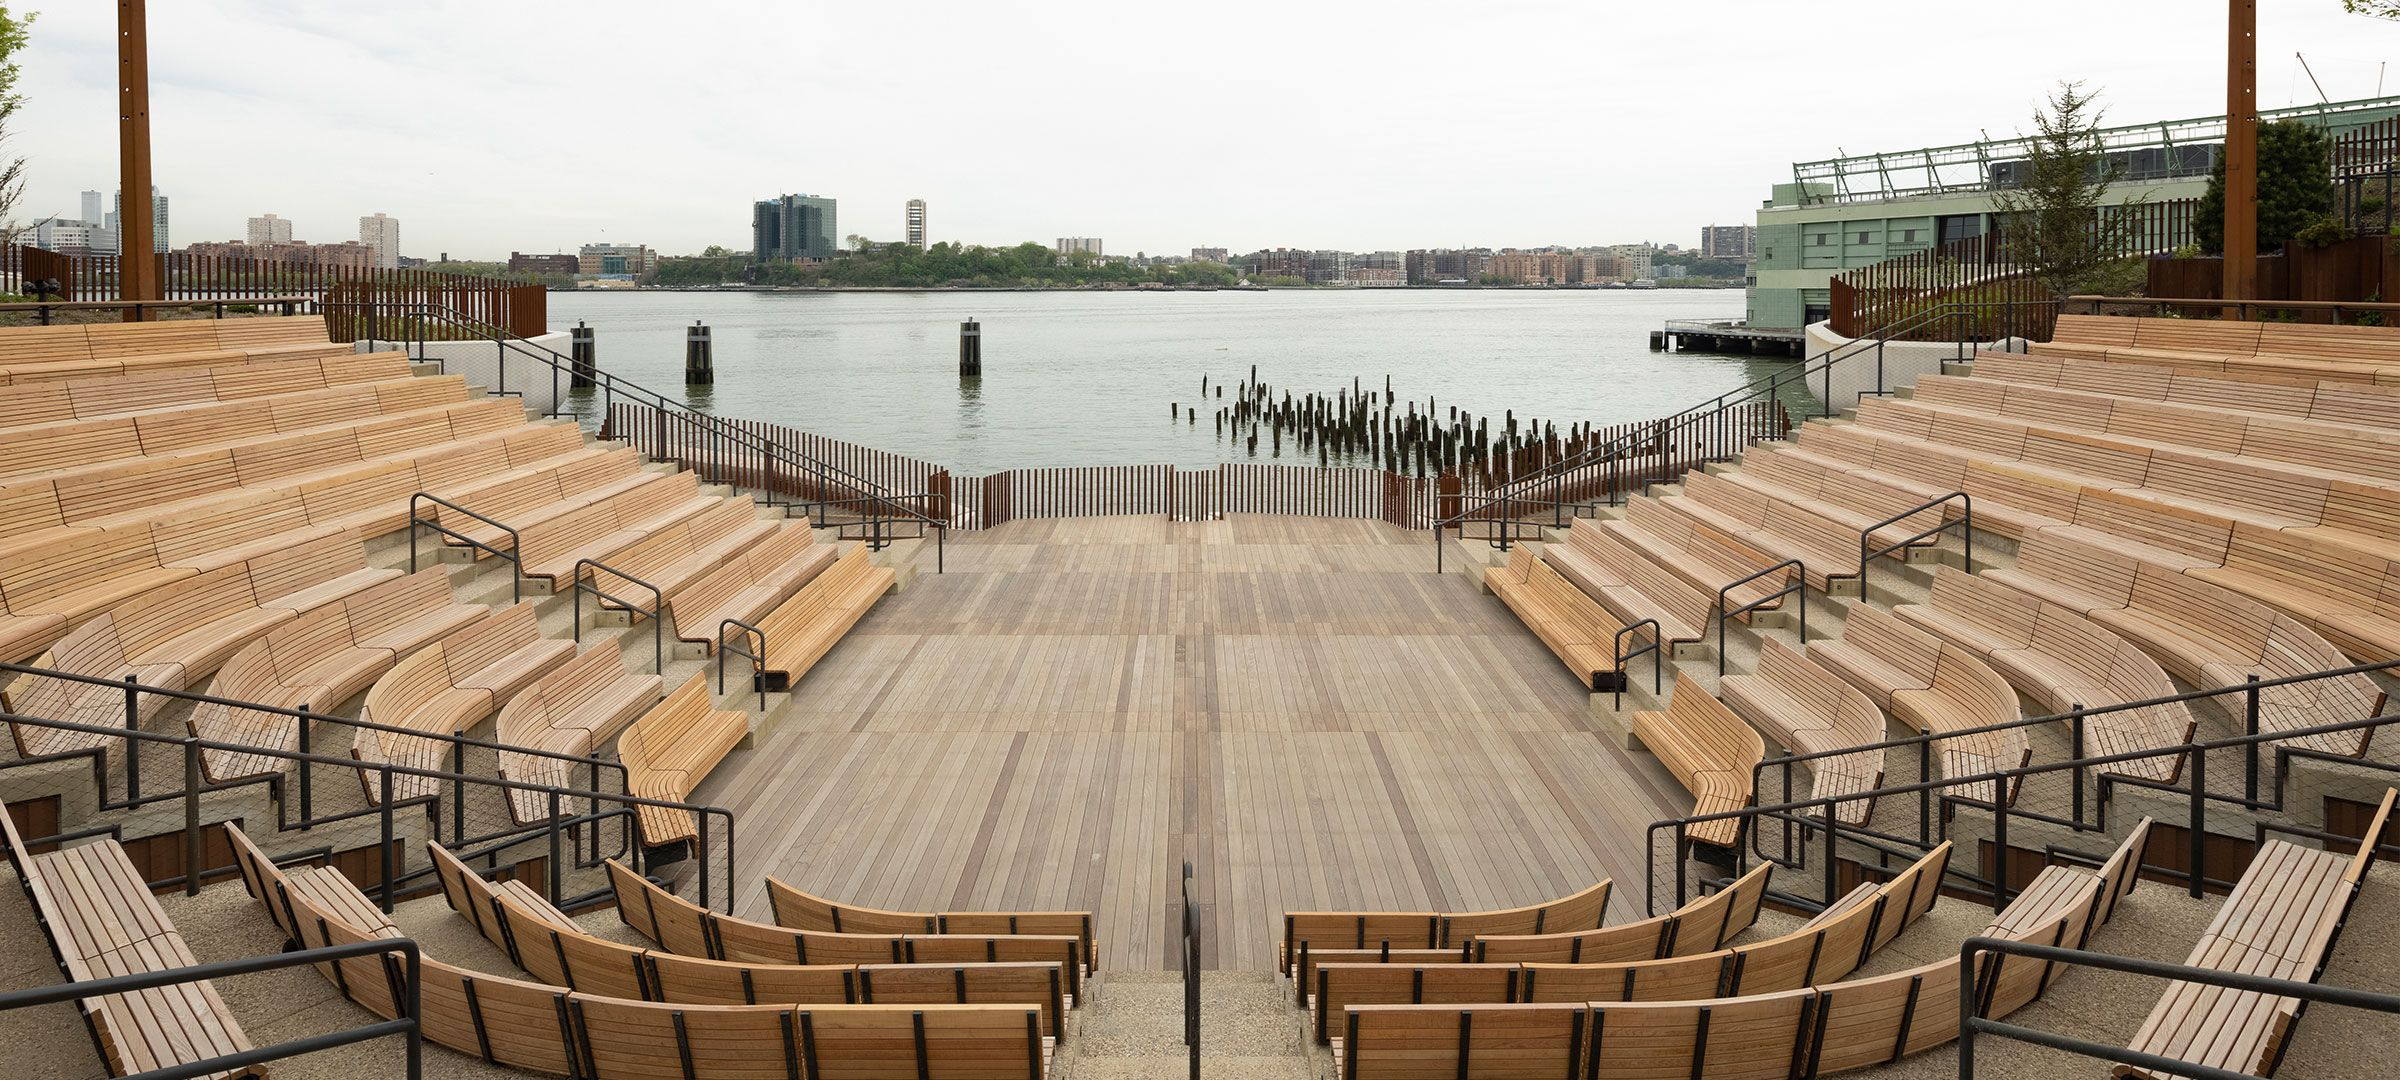 View of The Amph and its seating facing the Hudson River